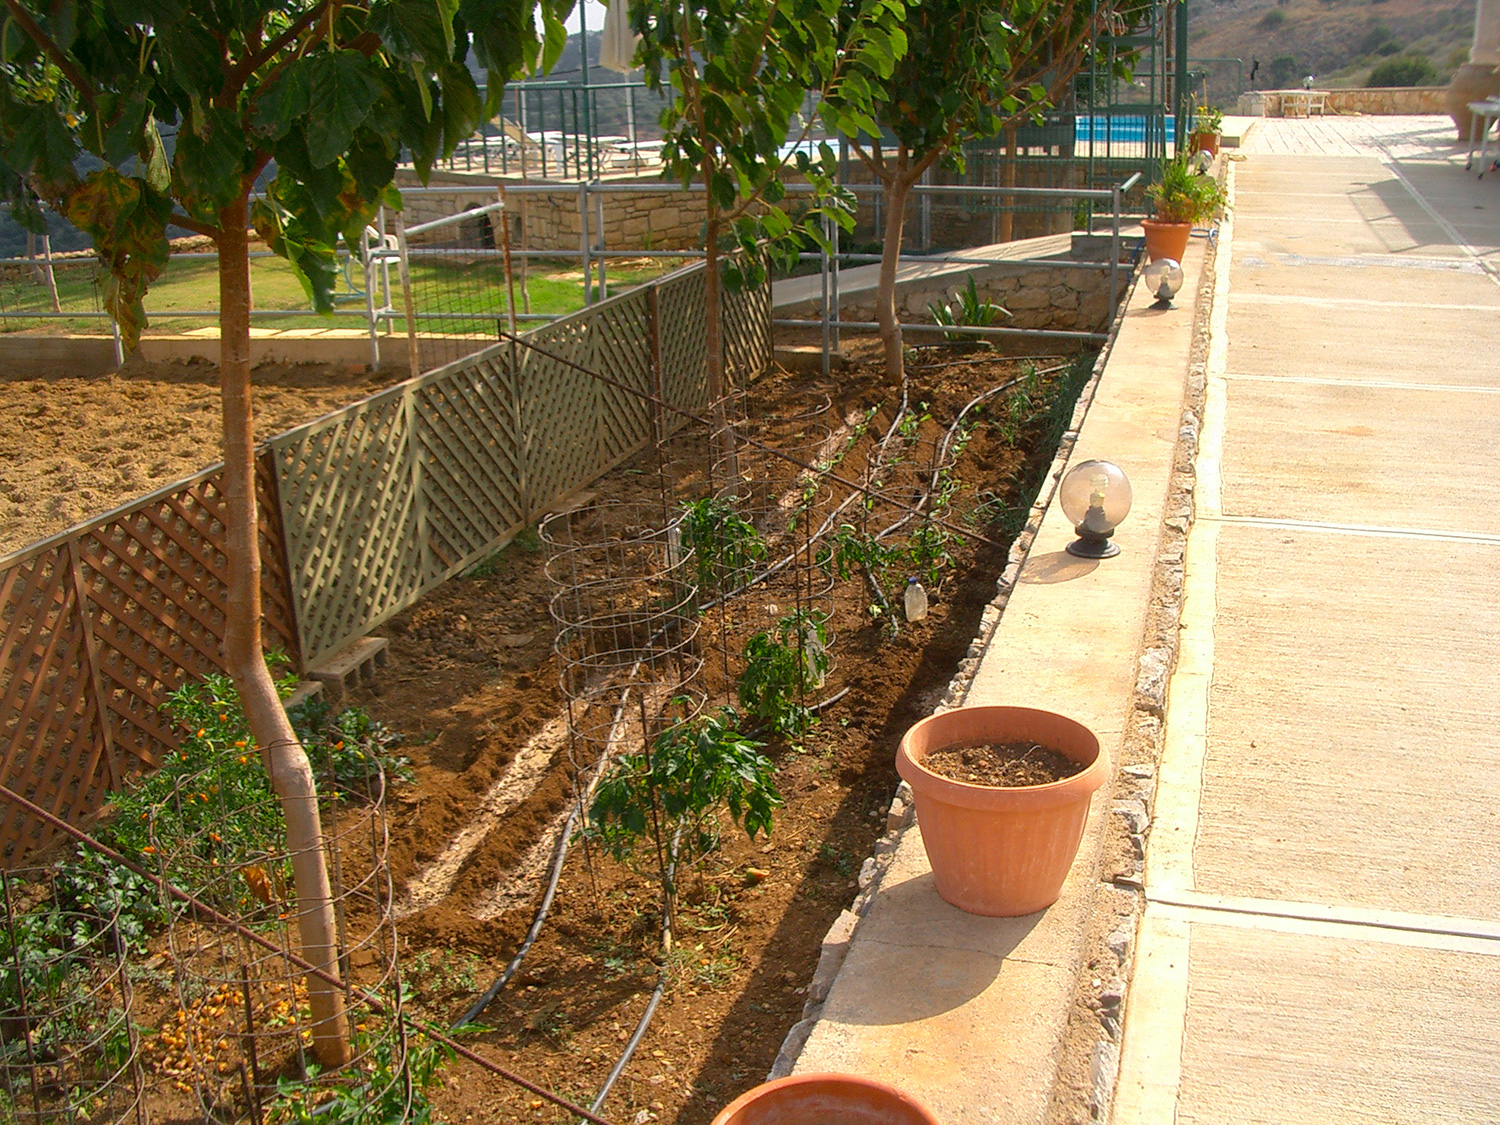 Outdoor - Our vegetable garden with many varieties!